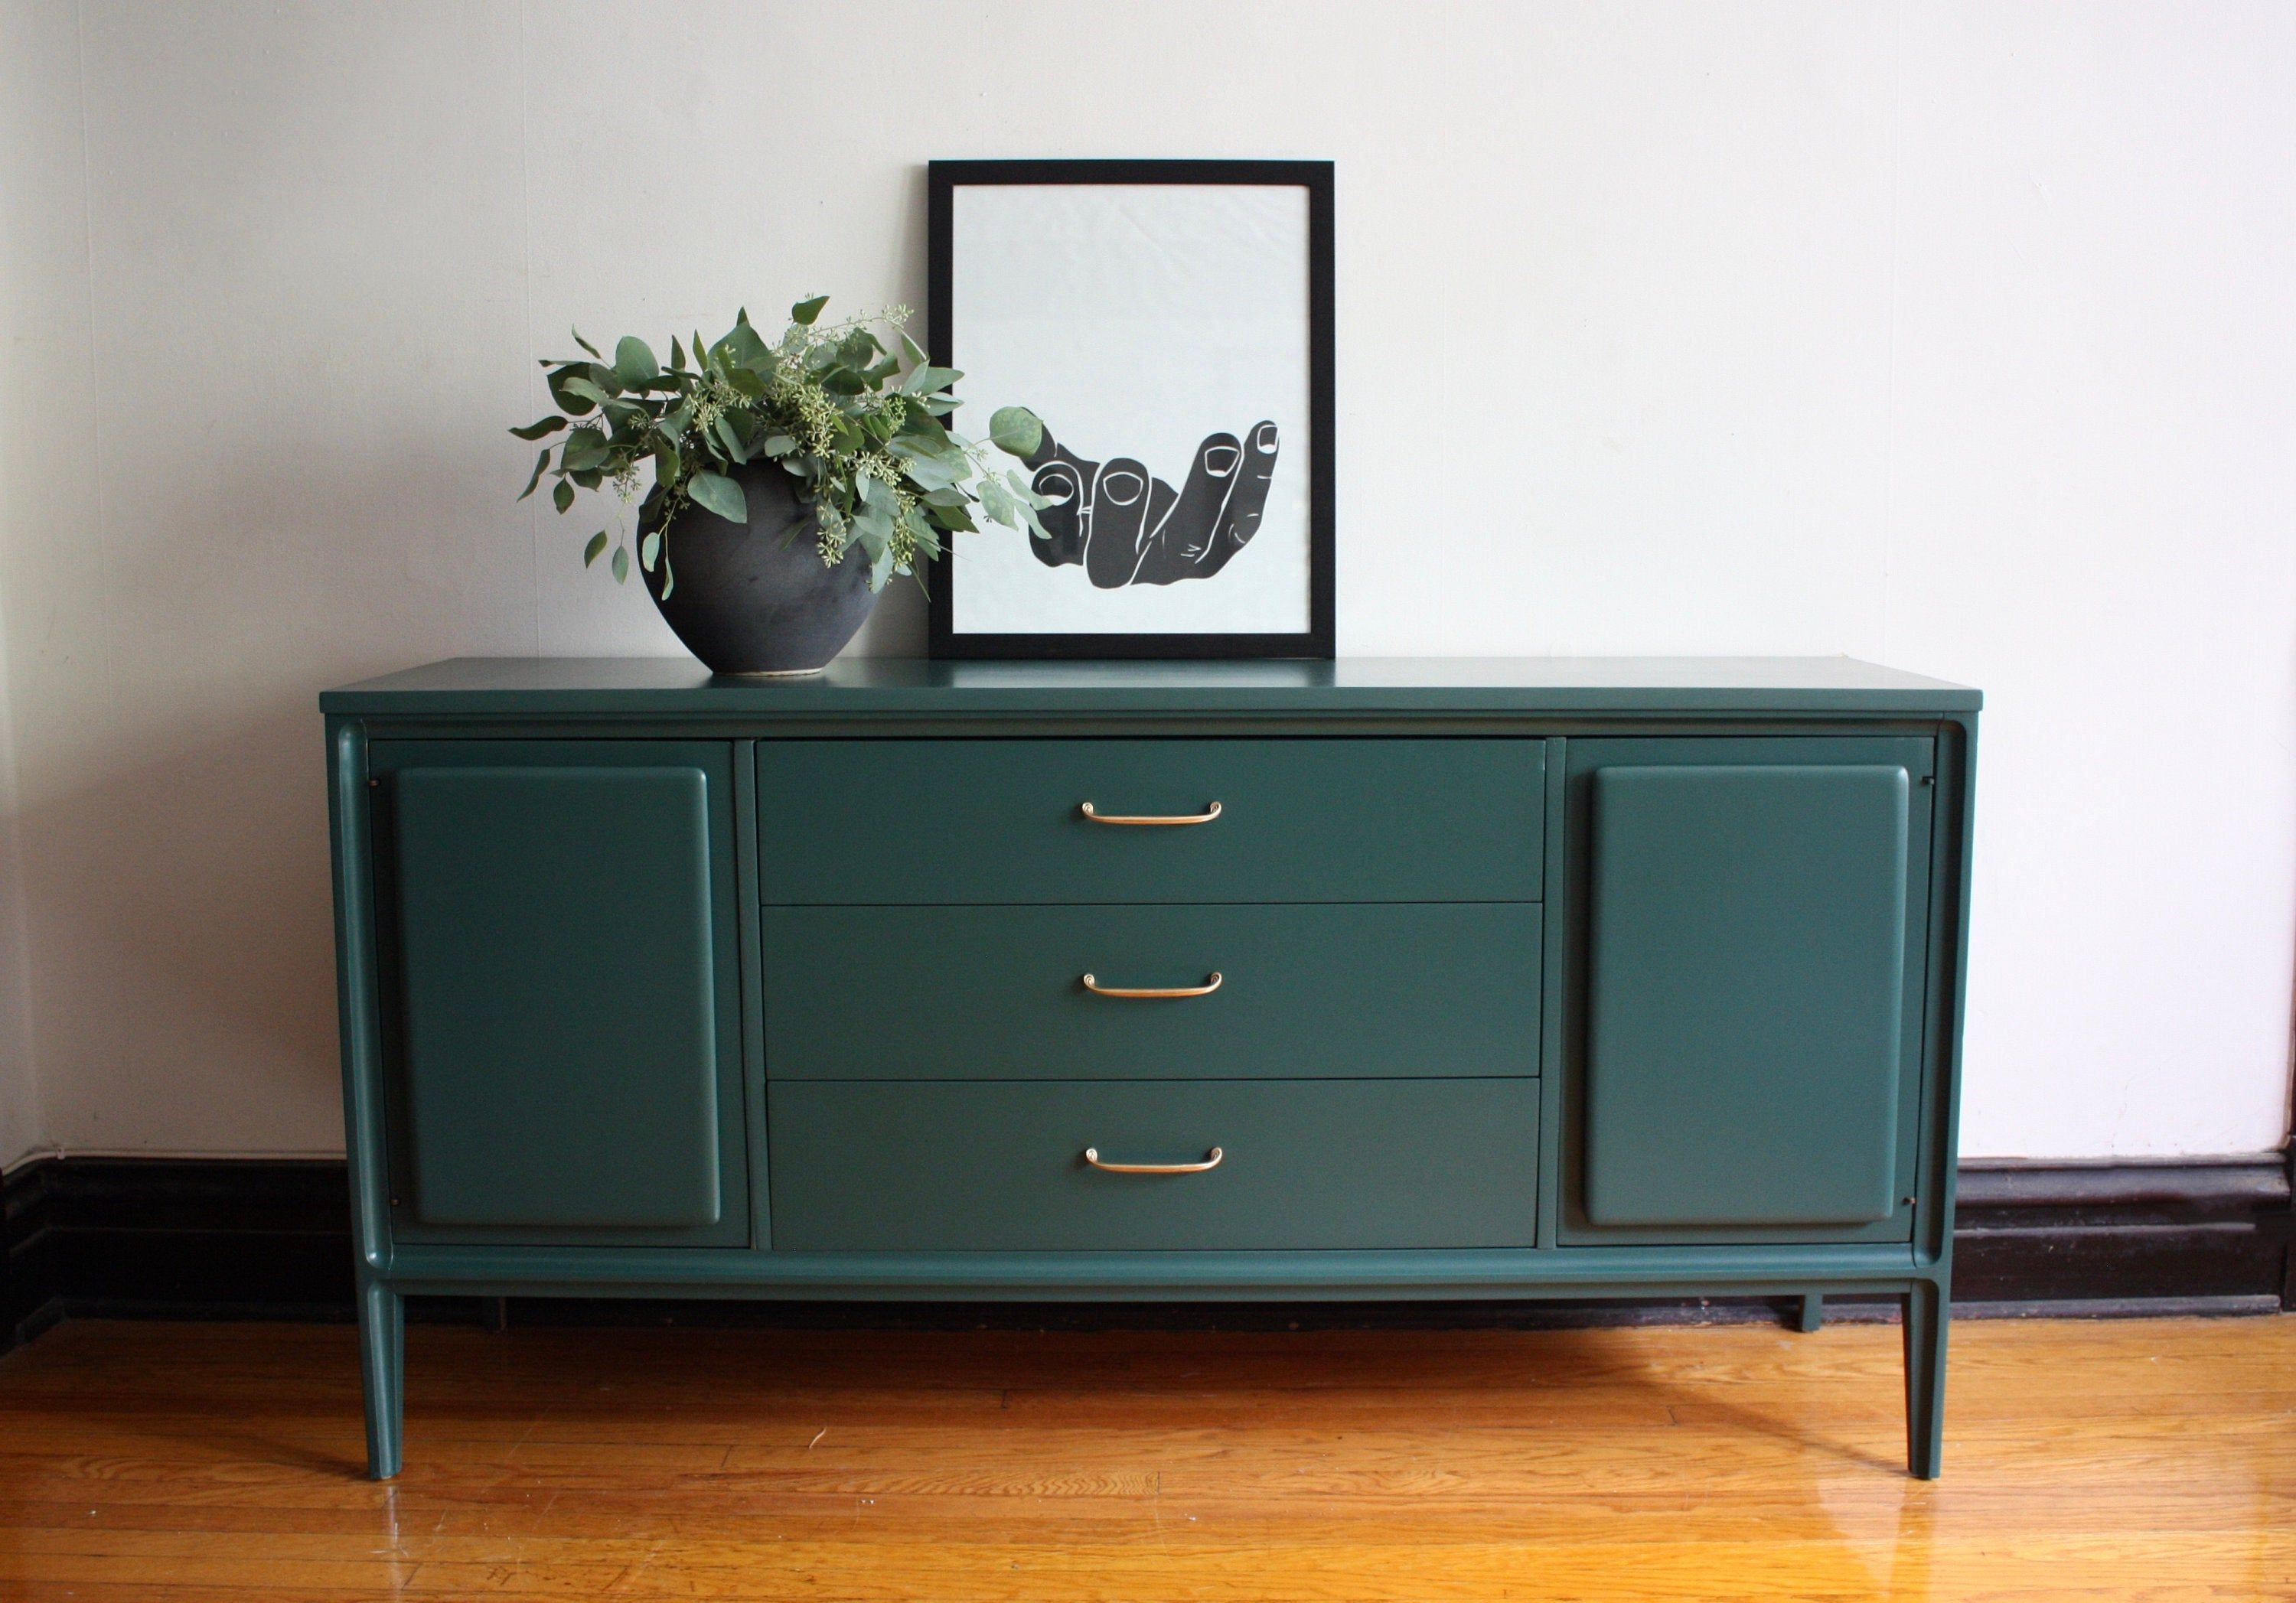 Soldhunter Green Mid Century Modern Credenza By Etsy Refinished Vintage Furniture Mid Century Modern Credenza Modern Sideboard [ 2095 x 3000 Pixel ]